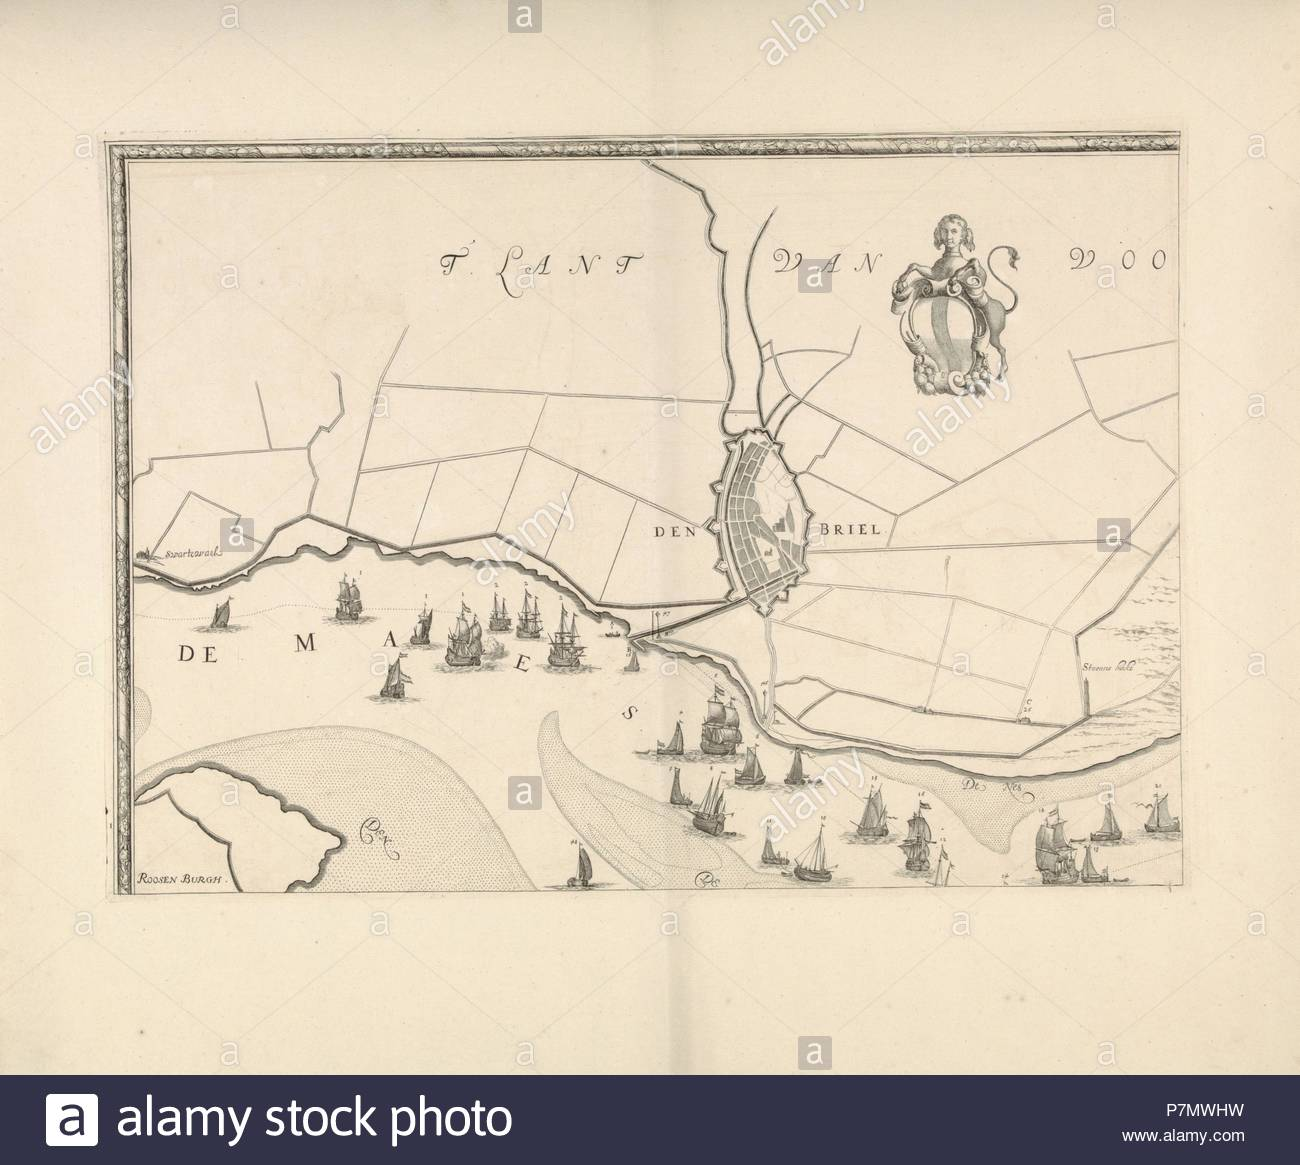 Map of Brielle and the banks of the Meuse, The Netherlands, Jacob Quack, 1665. - Stock Image